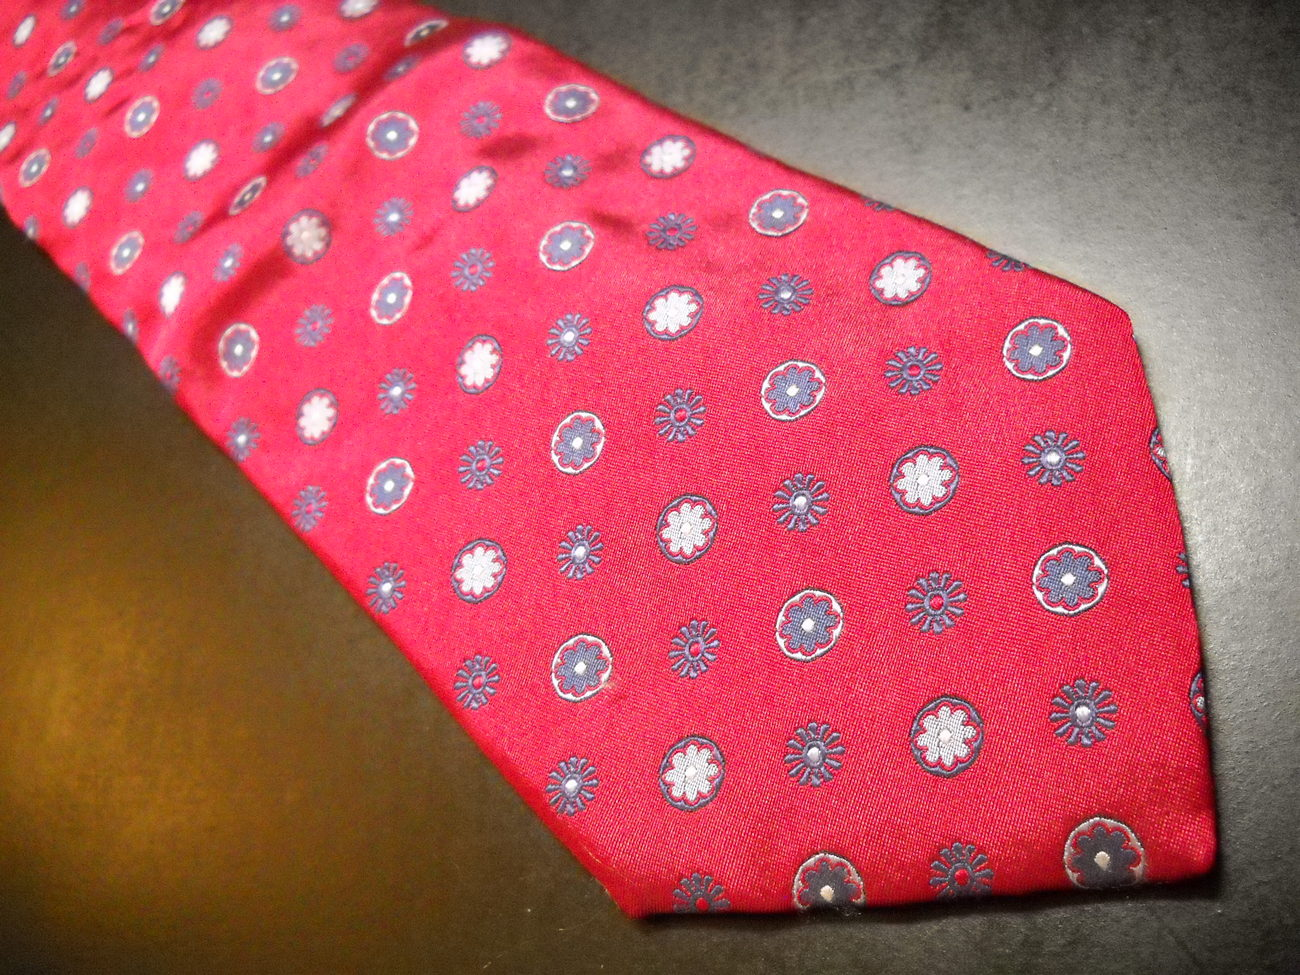 Joseph Abboud Neck Tie Bright Reds Silver Blue Flower Accents Tie Made in Italy